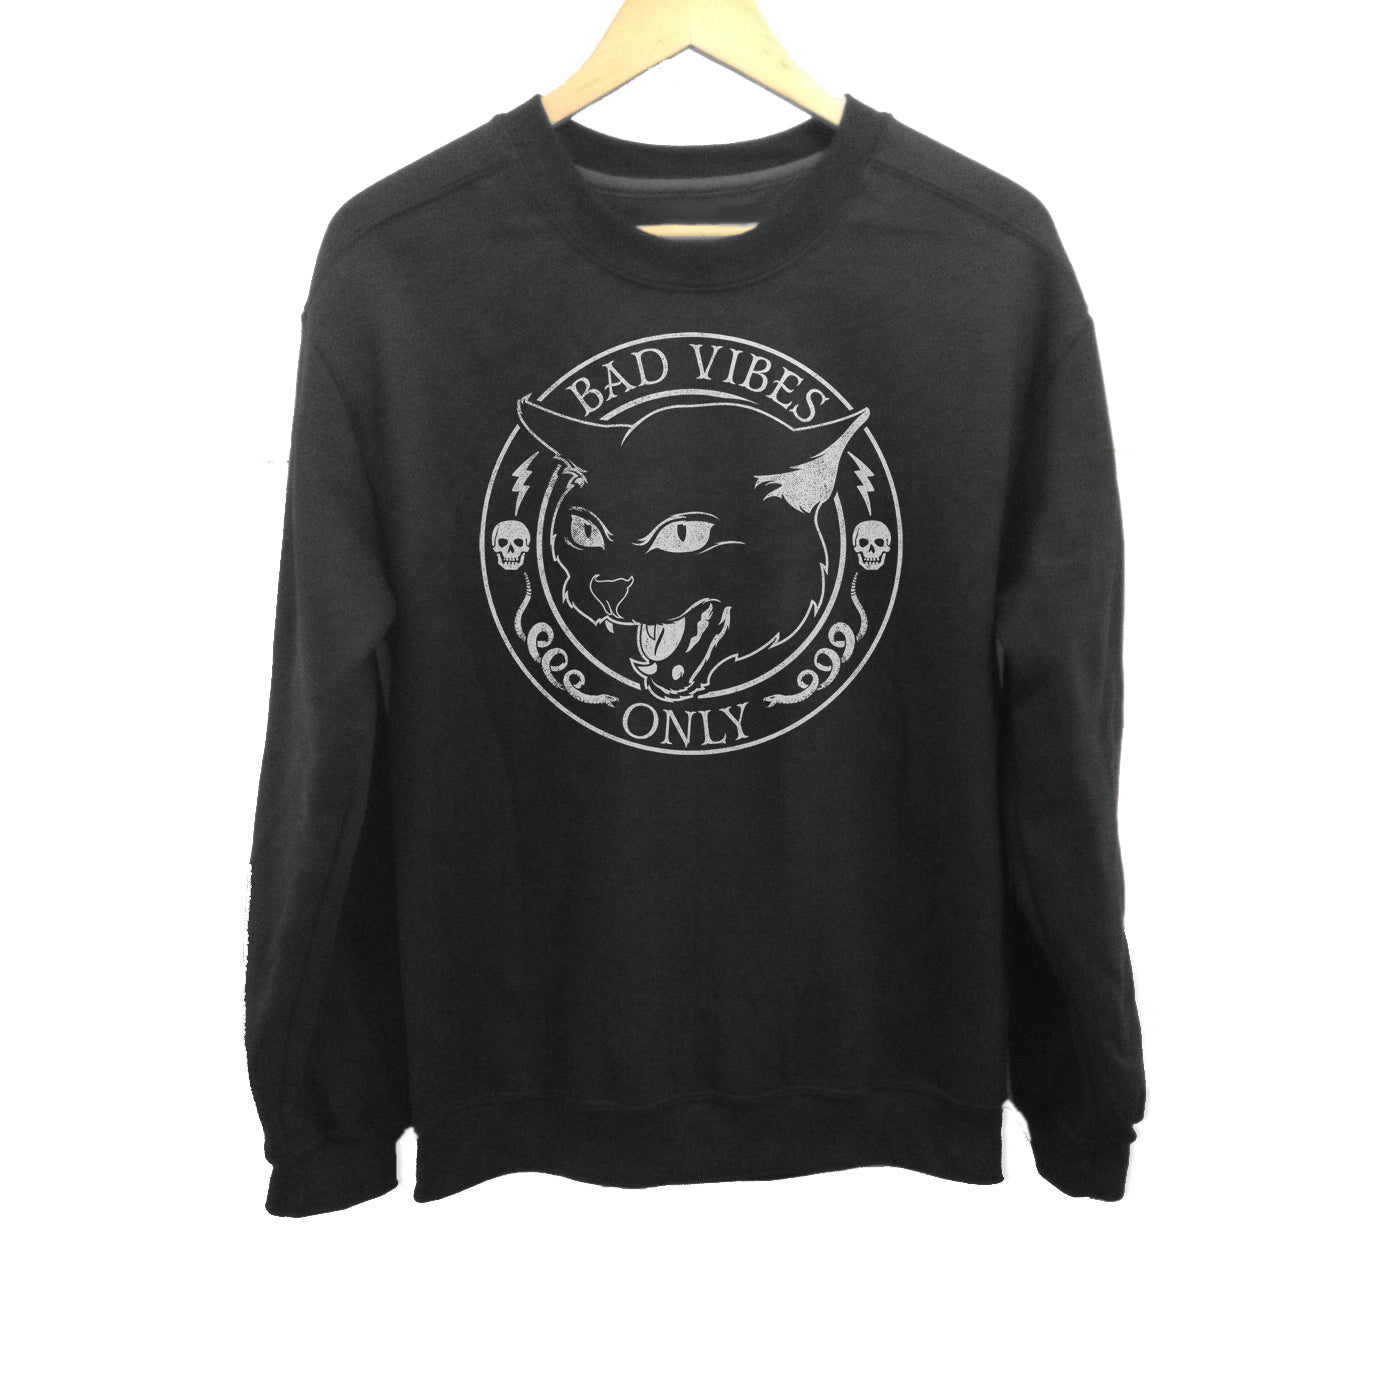 Unisex Bad Vibes Only Sweatshirt - Goth Shirt - Black Cat Shirt